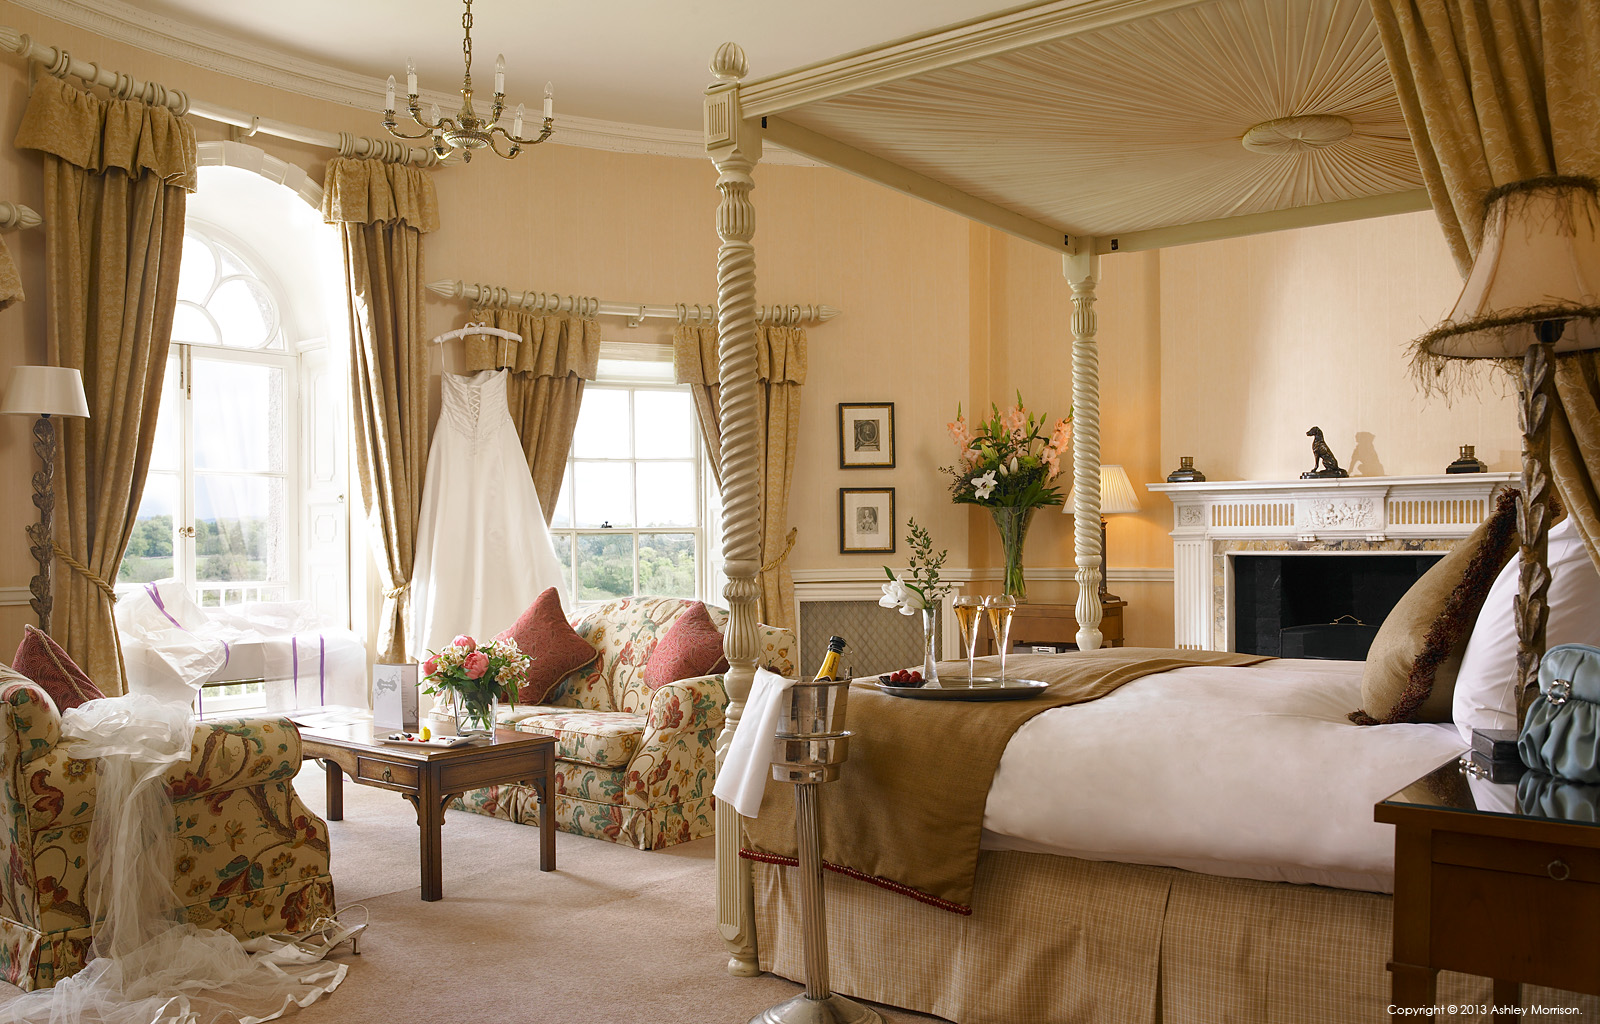 Bridal suite in the Mount Juliet House at Mount Juliet Country Estate in County Kilkenny by Ashley Morrison.